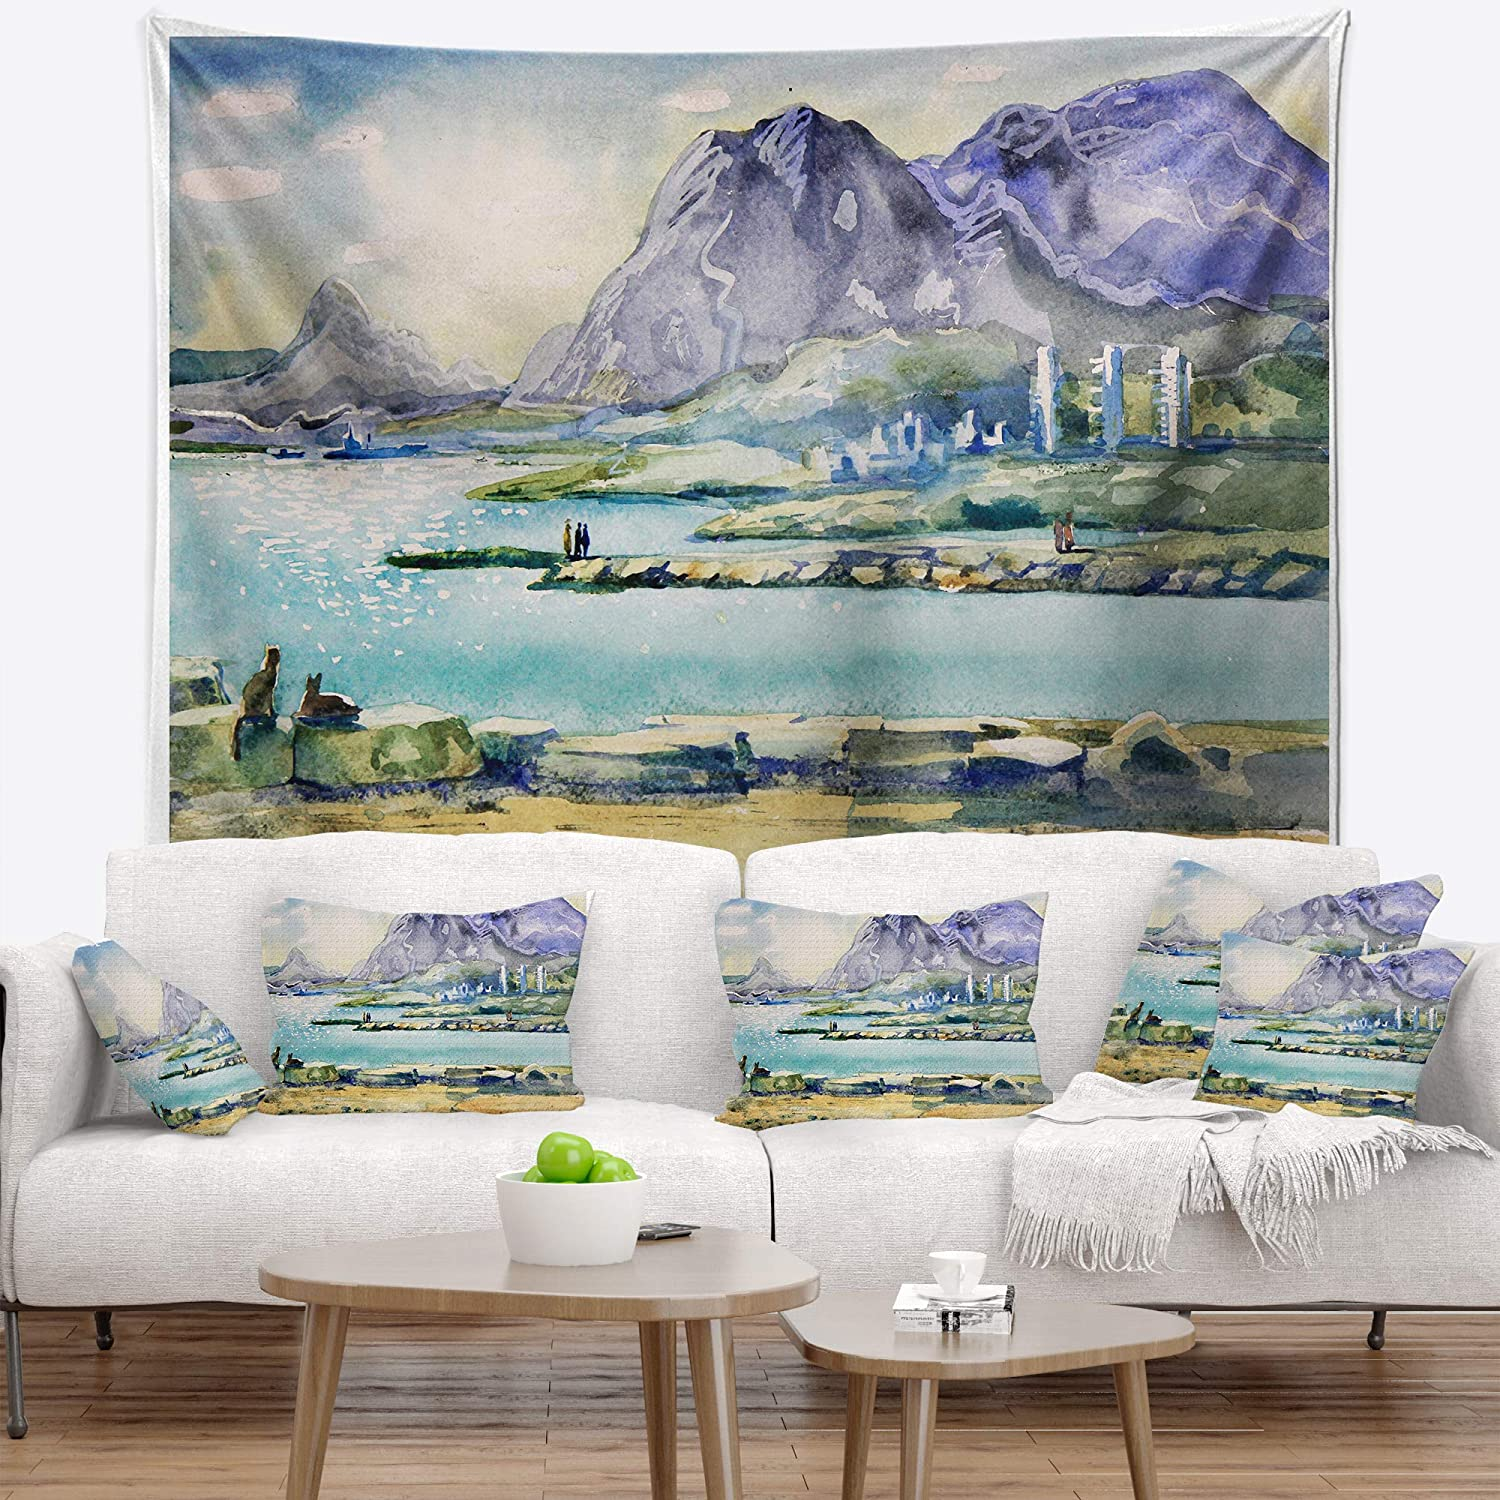 Created On Lightweight Polyester Fabric X 68 In 80 In Designart Tap6365 80 68 Watercolor Blue Hills Landscape Blanket Décor Art For Home And Office Wall Tapestry X Large